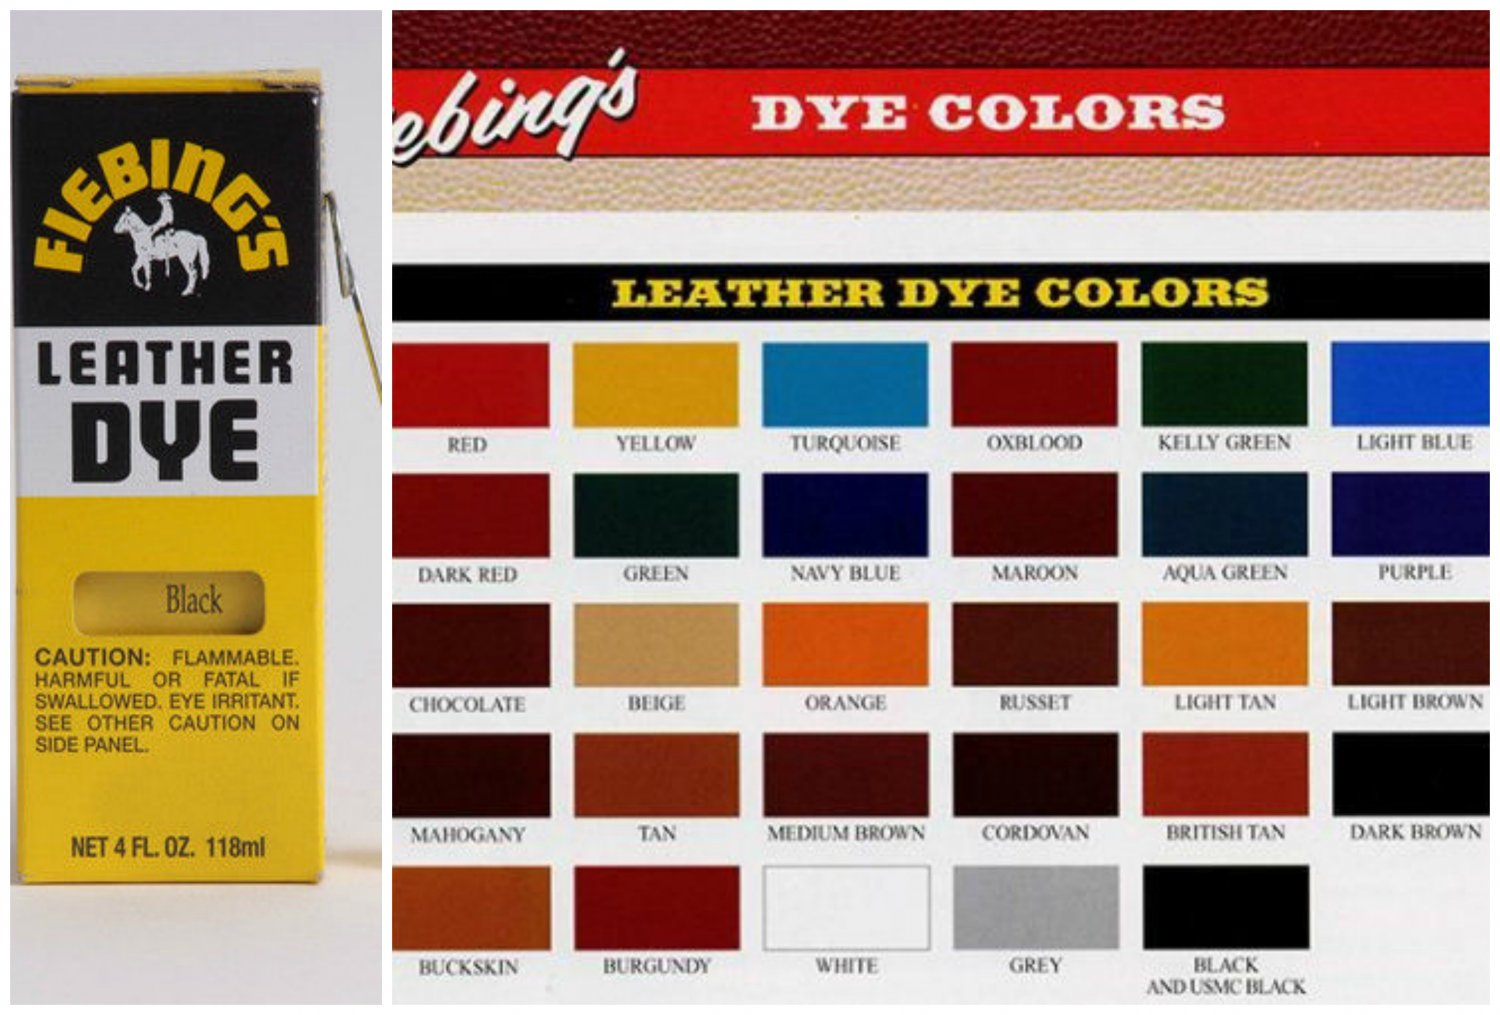 Fiebings Leather Dye 4 oz. with Applicator Shoes Boots Bag Cordovan Color